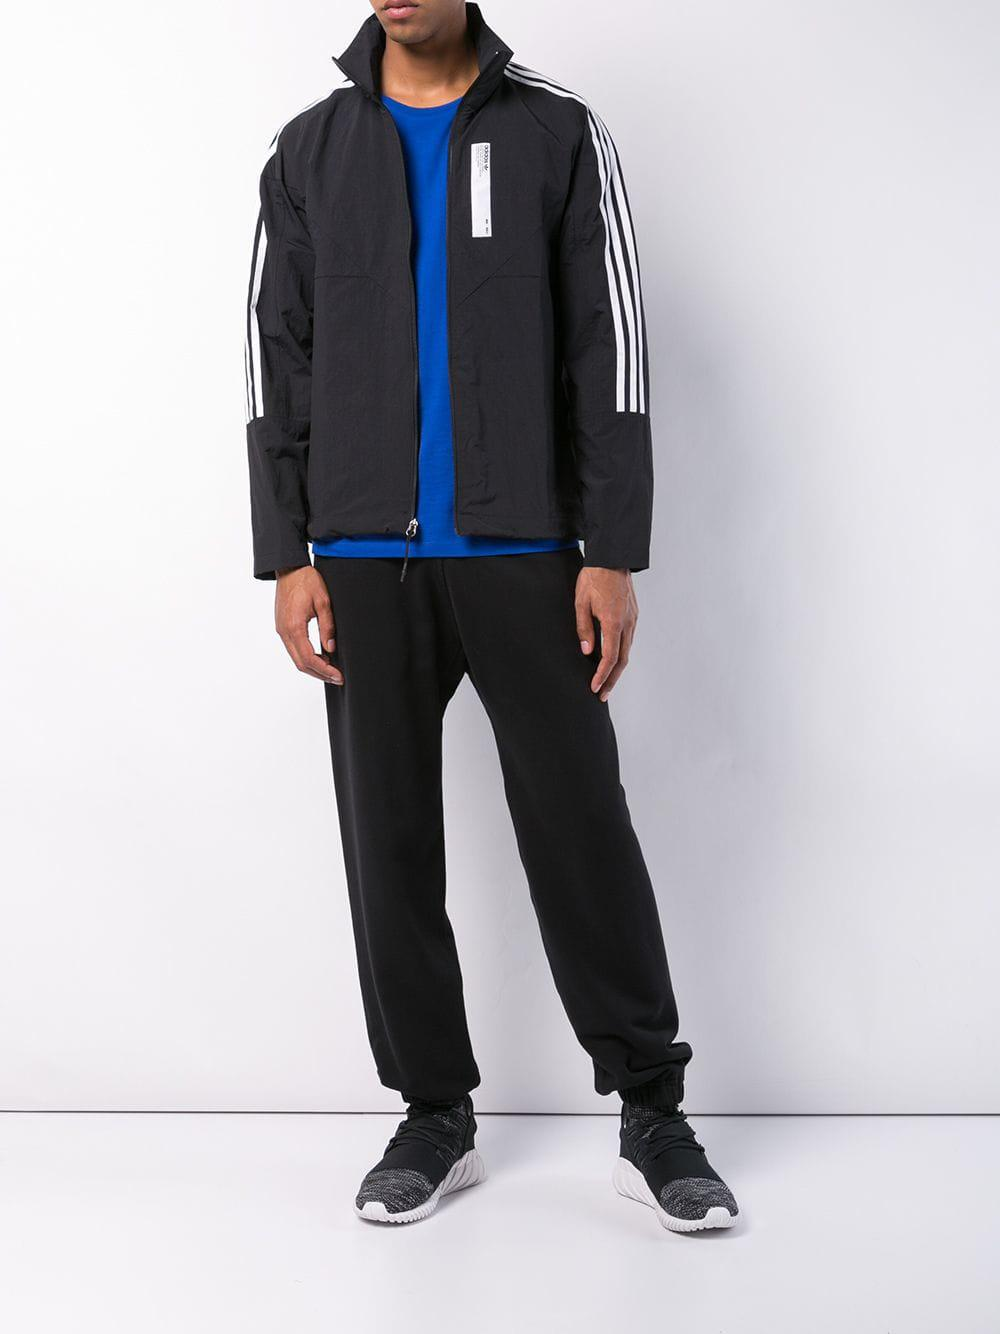 d303fda41 Lyst - adidas Nmd Track Top in Black for Men